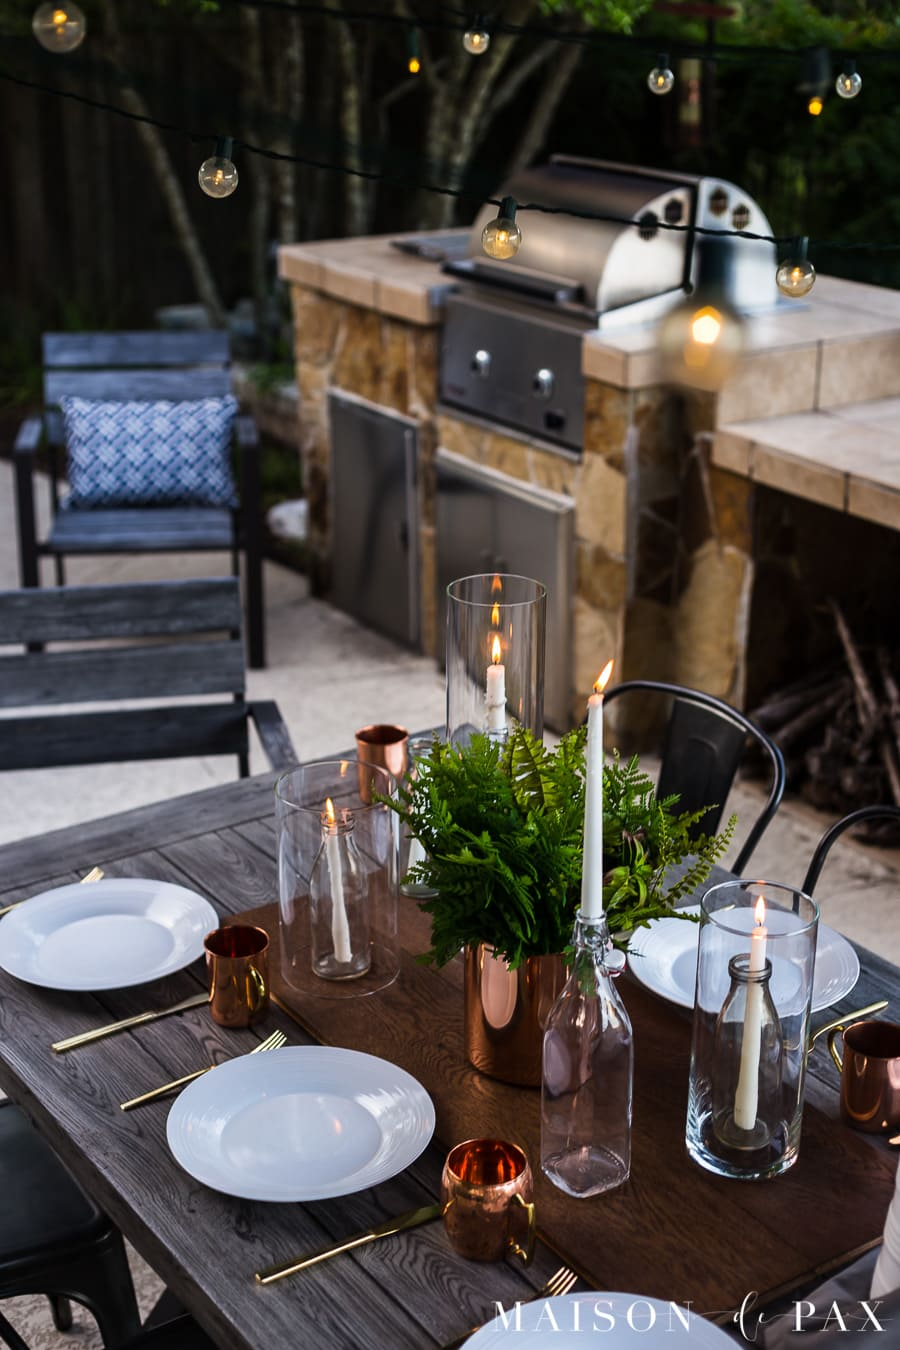 String lights and candles make this outdoor dining magical. Get more tips for outdoor summer dining! #outdoordining #outdoorentertaining #summerentertaining #stringlights